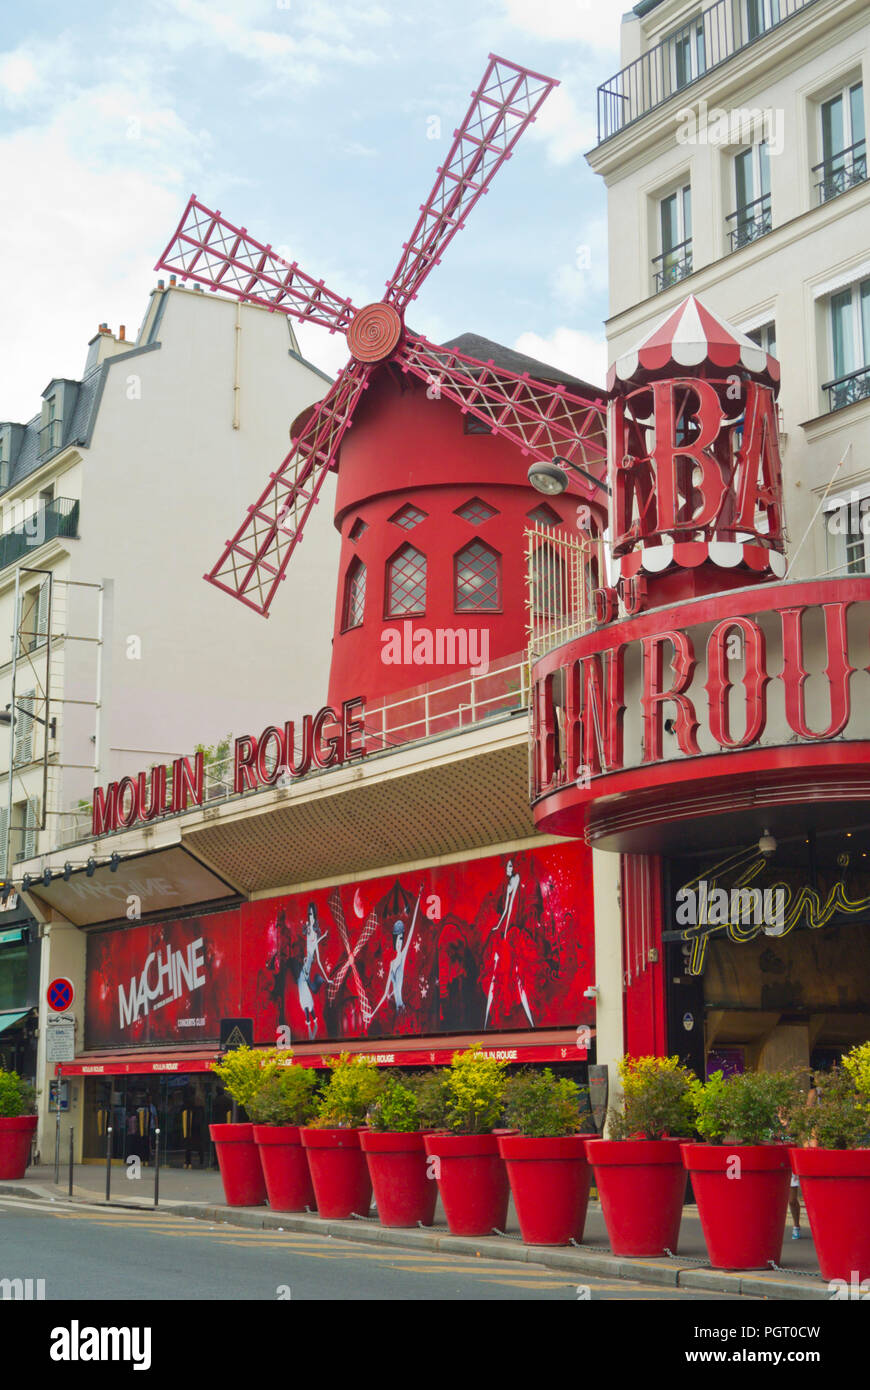 La Machine du Moulin Rouge famous nightclub, Place Blanche, Pigalle, Paris, France - Stock Image